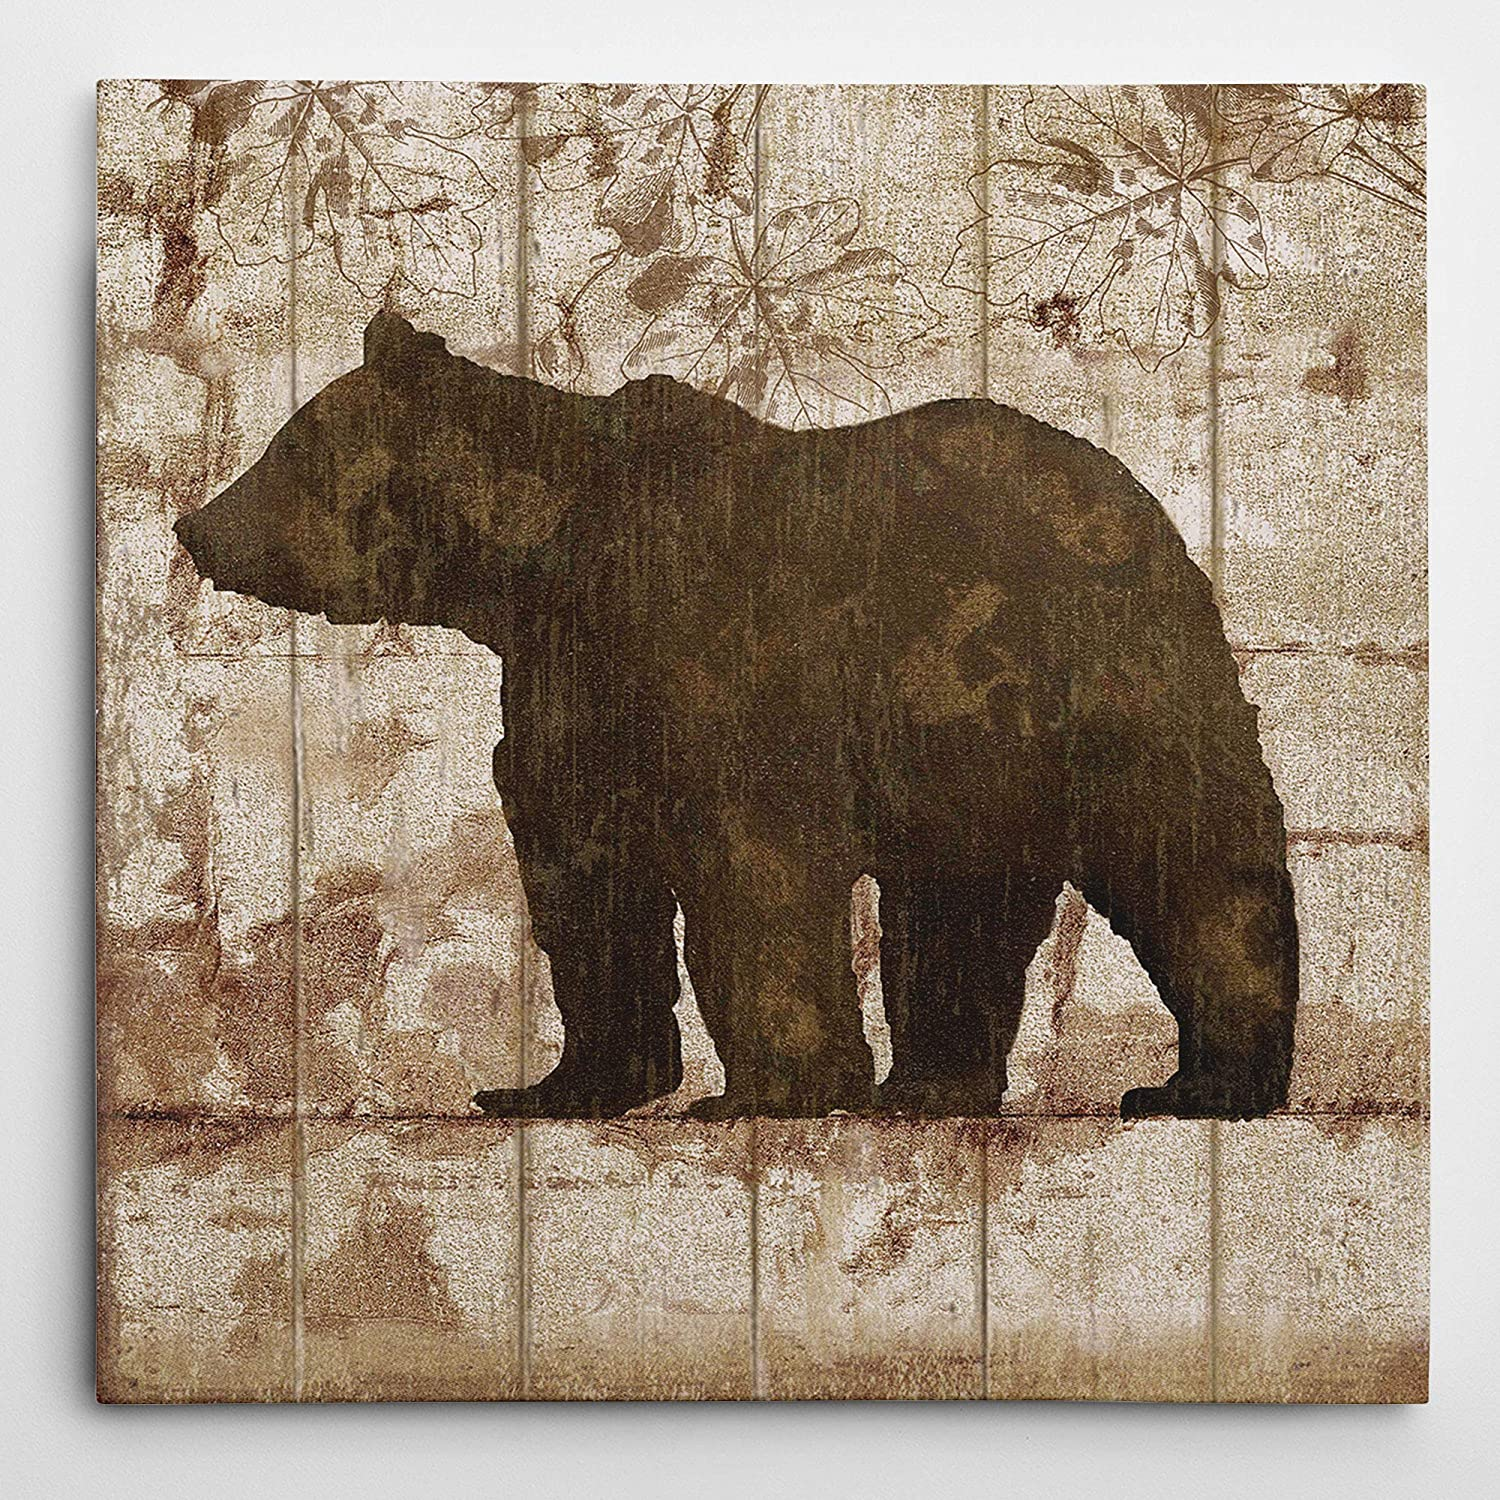 WEXFORD HOME Bear Crossing Picture Gallery Wrapped Canvas Wall Art, 24x24